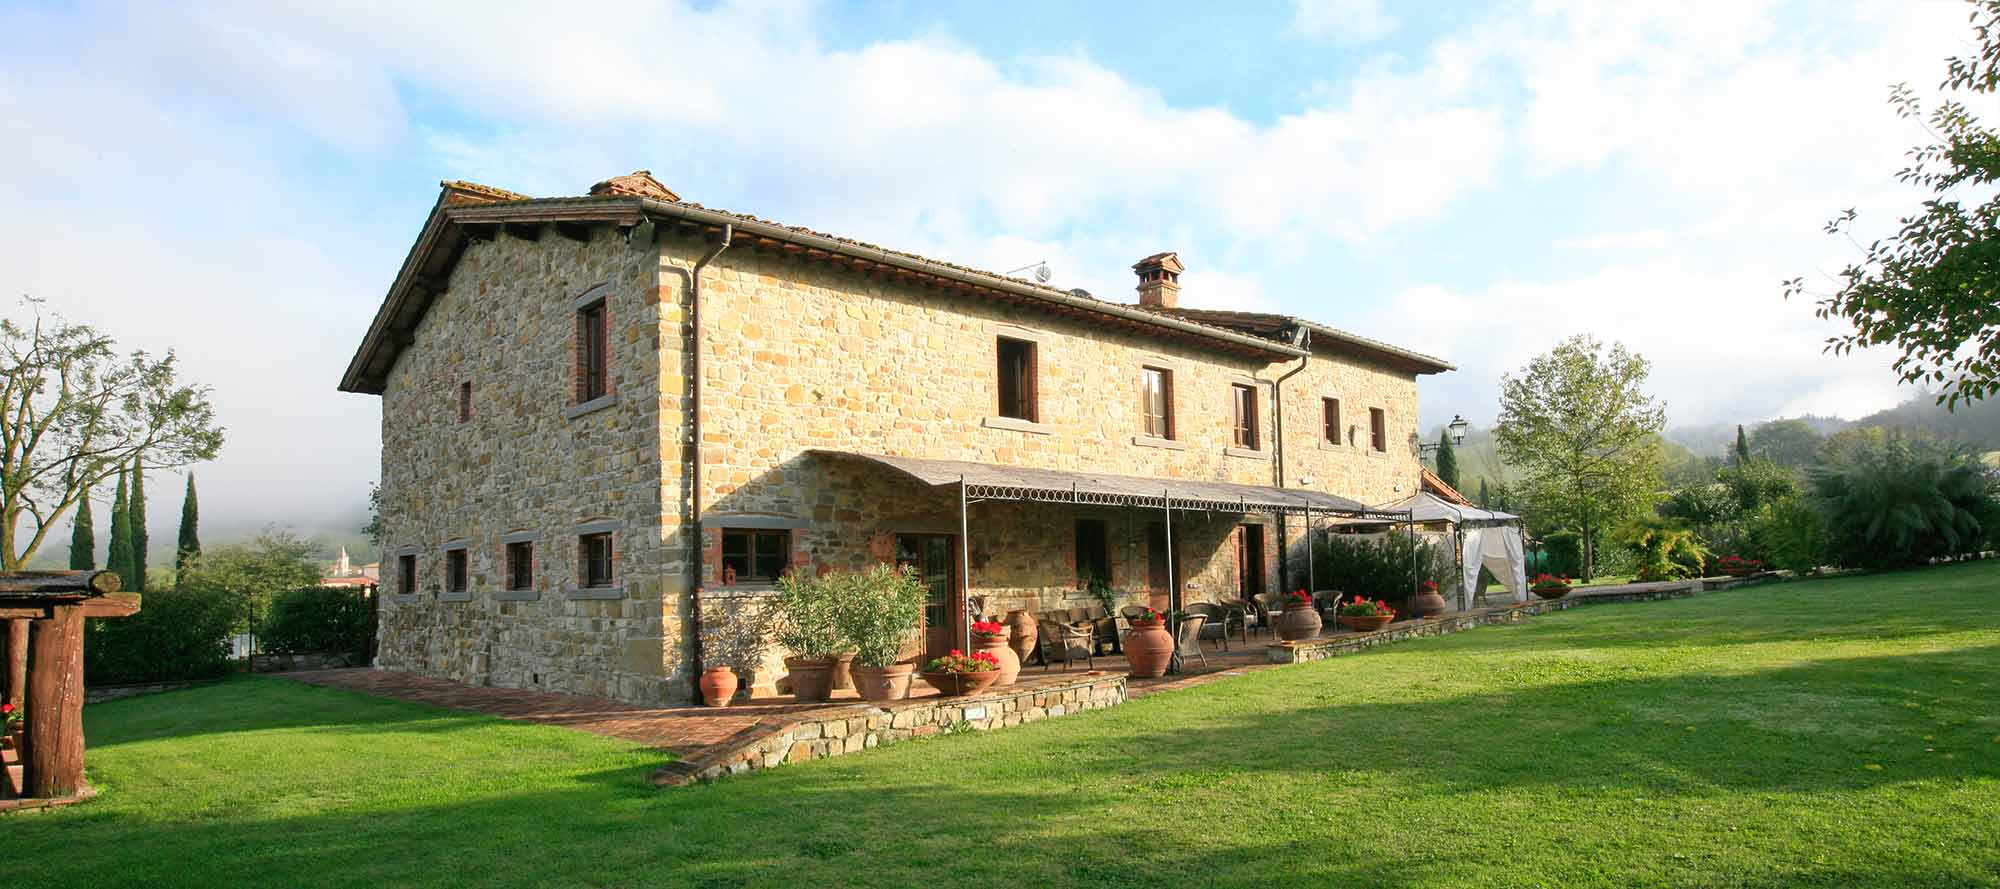 Elegant And Prestigious Tuscan Rental Farmhouse Located In Picturesque Landscape With Many Modern Comforts